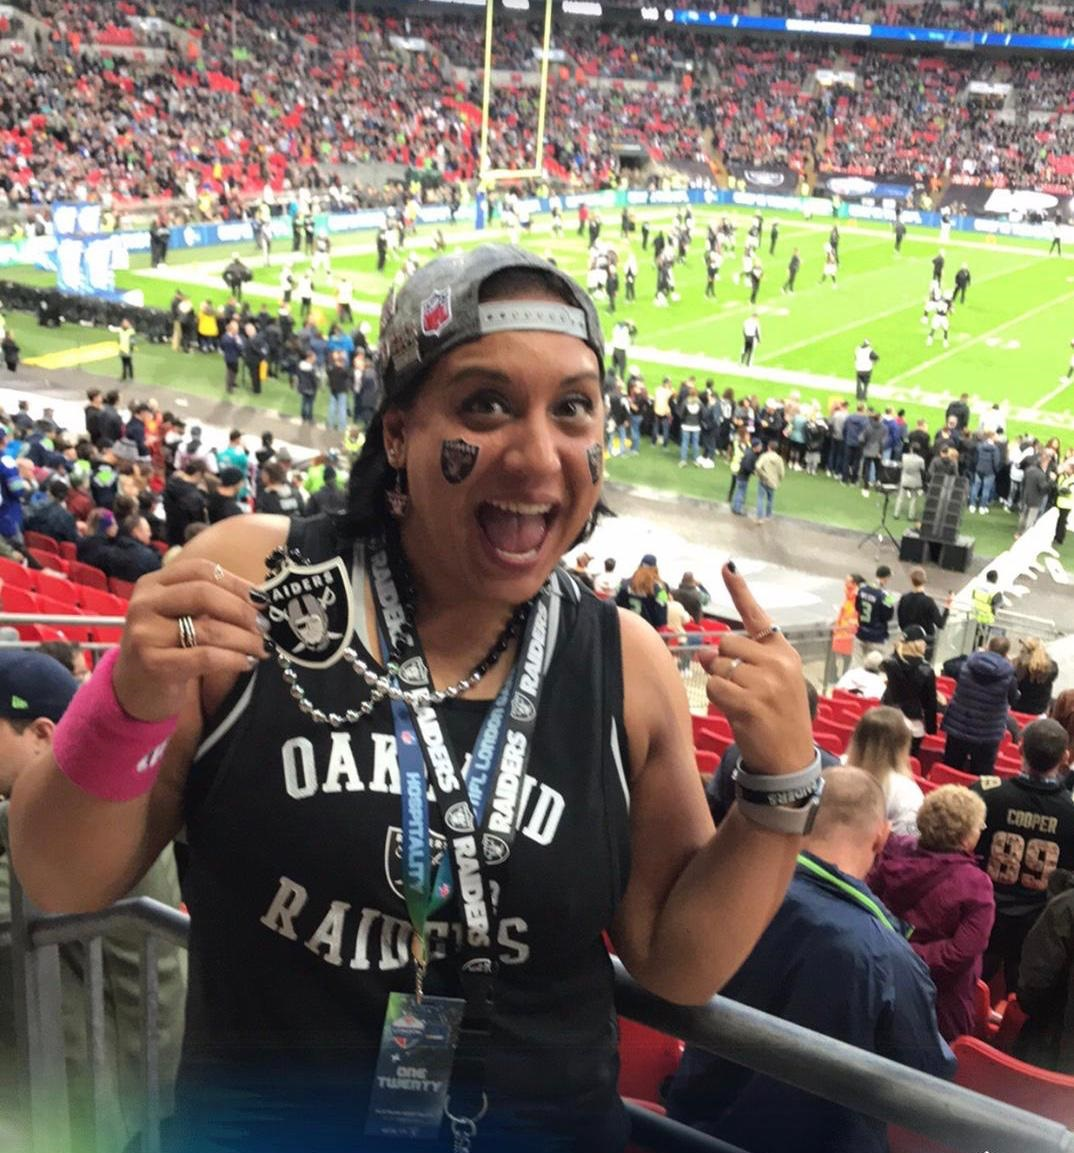 Celebrating female NFL fans in the UK: Introducing Raiders fan, Kimmi.